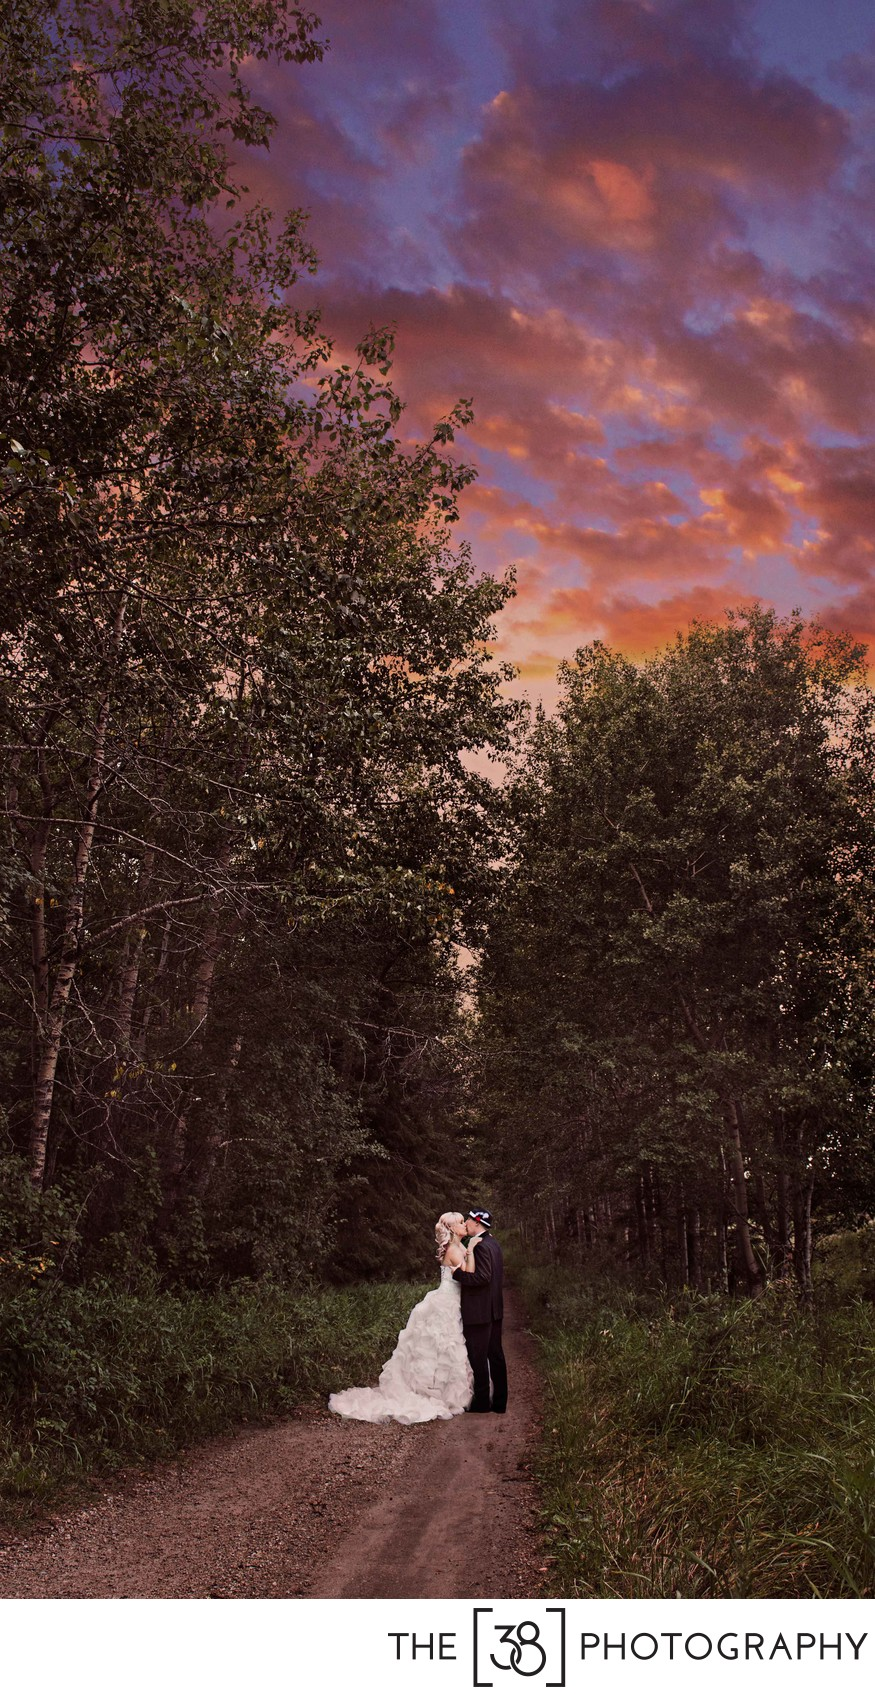 Sunset Wedding Photos in the Park